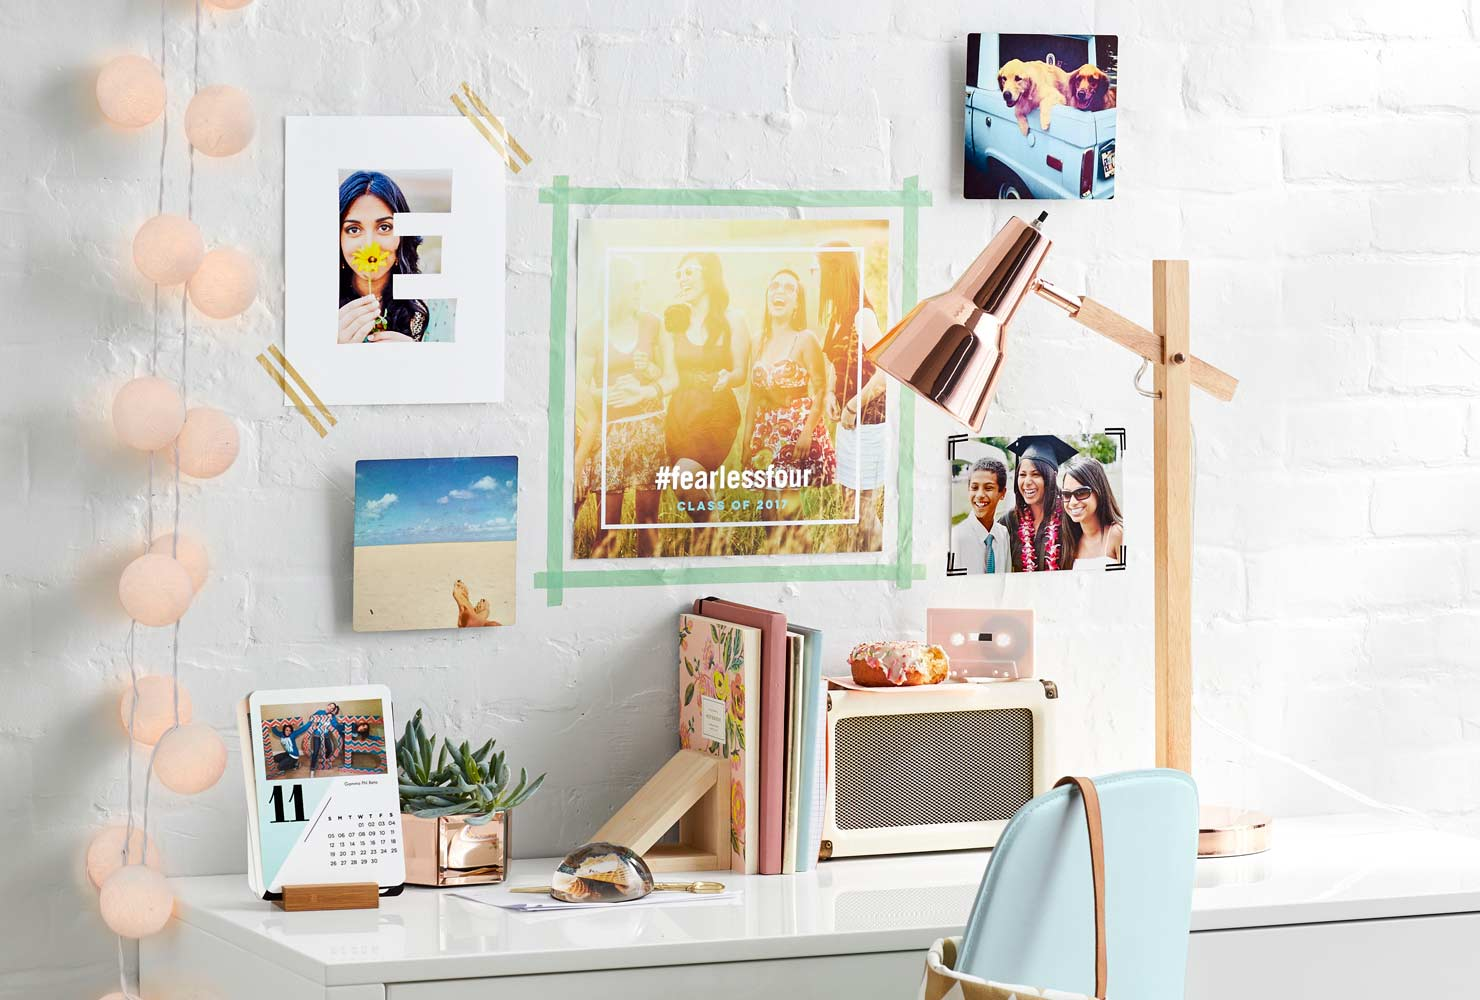 Desk decor with colorful DIY wall art